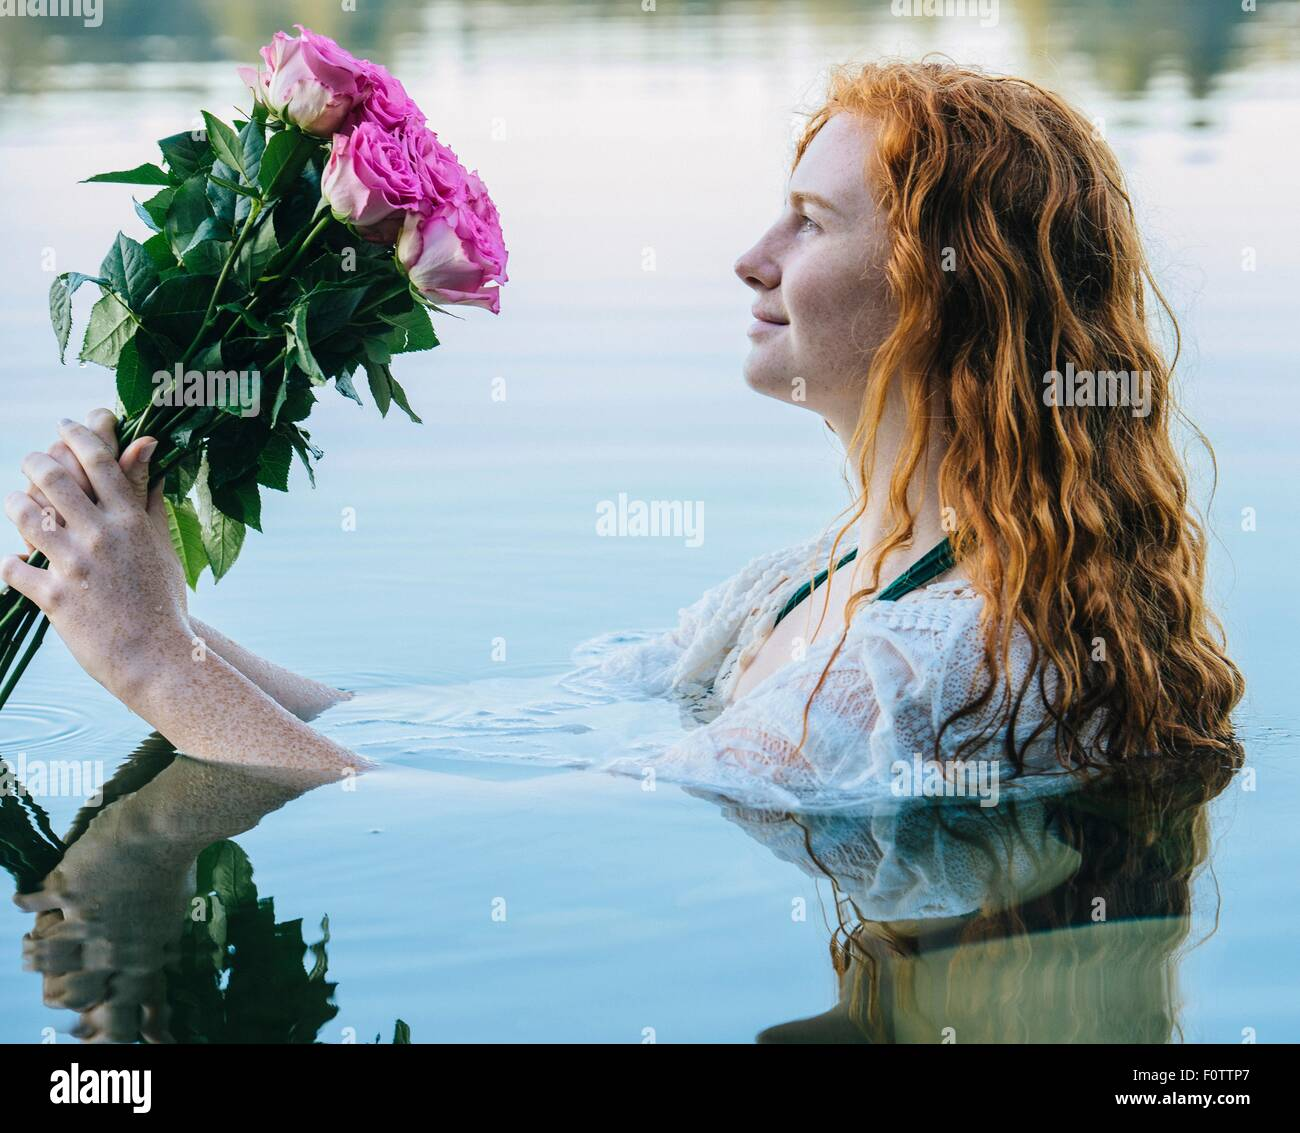 Head and shoulders of young woman with long red hair in lake gazing at bunch of pink roses - Stock Image